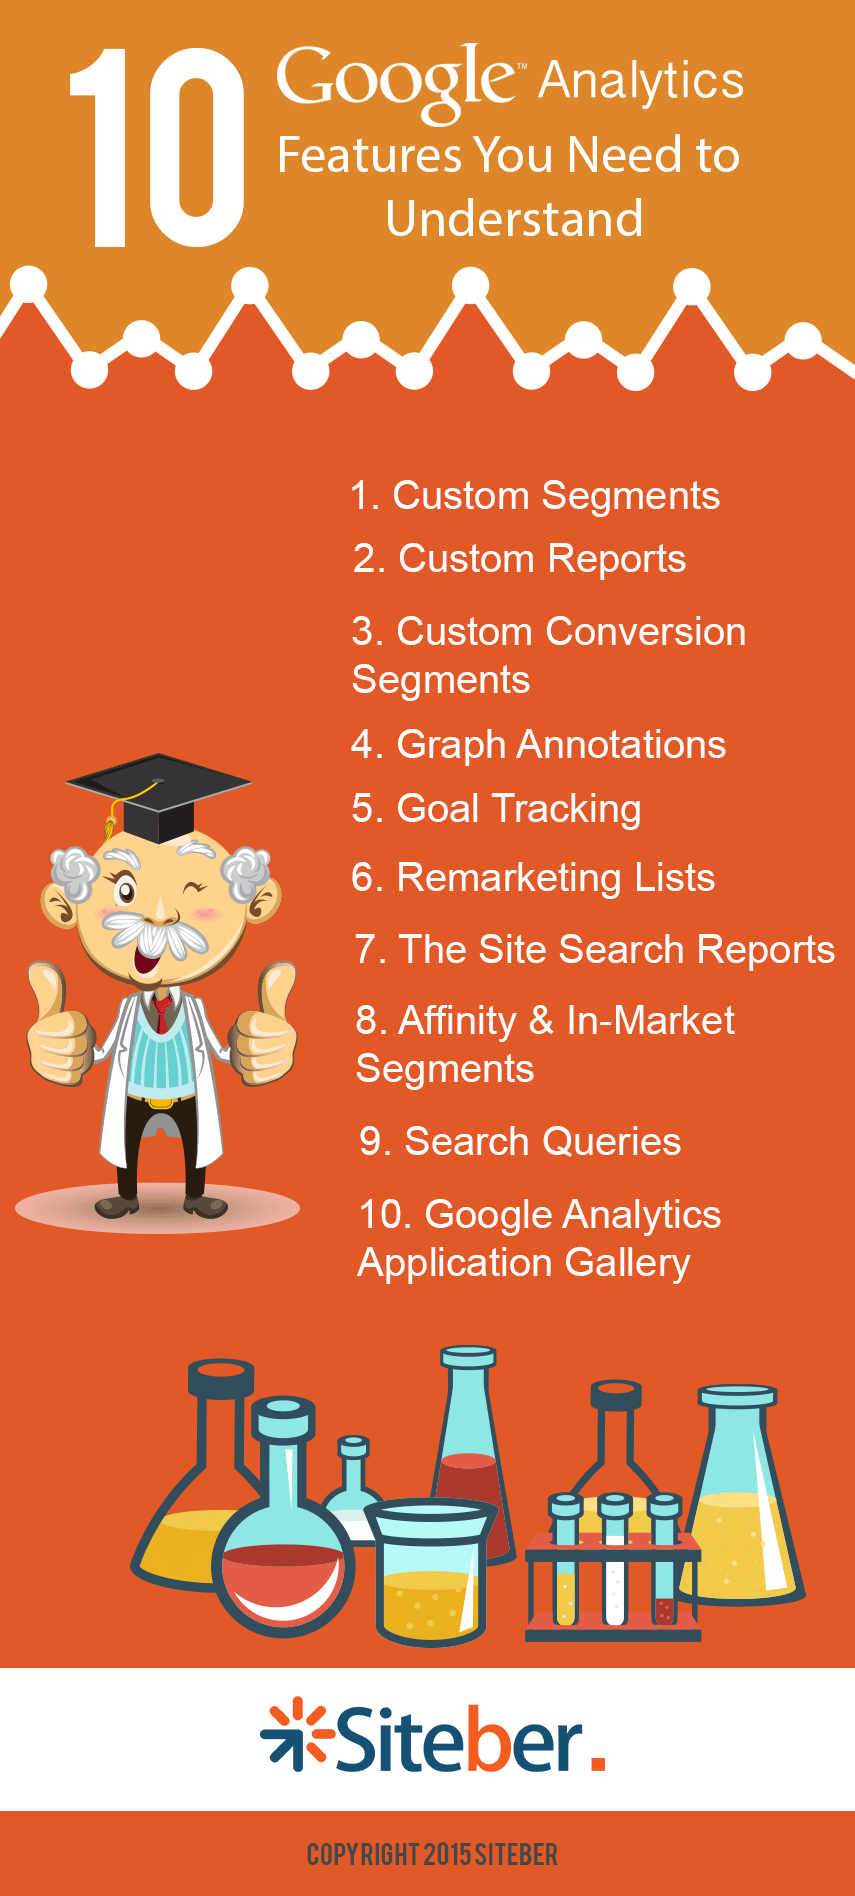 10-Google-analytics-features-you-need-to-understand-infographic